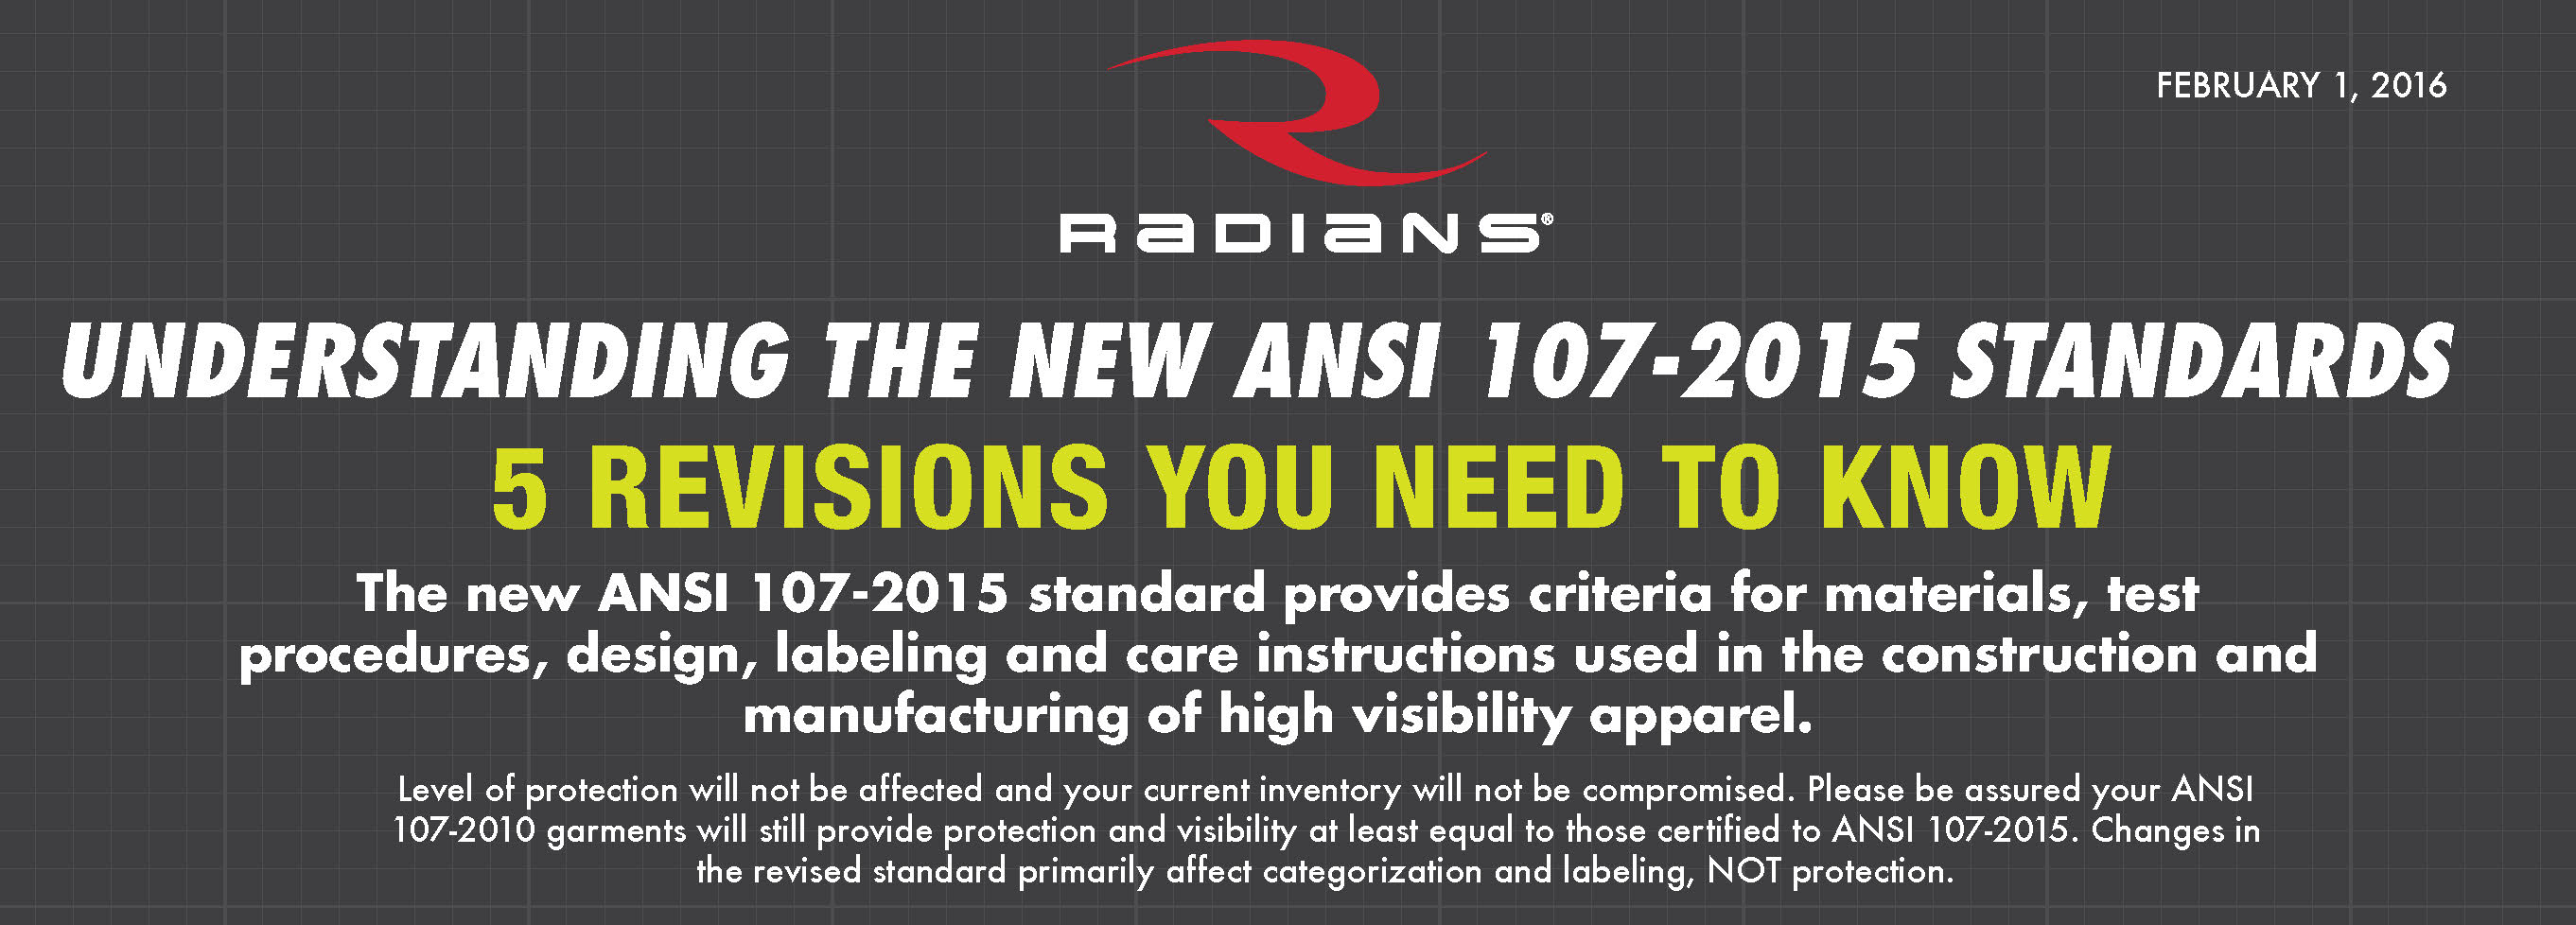 Radians Understanding the New ANSI 107-2015 standards.